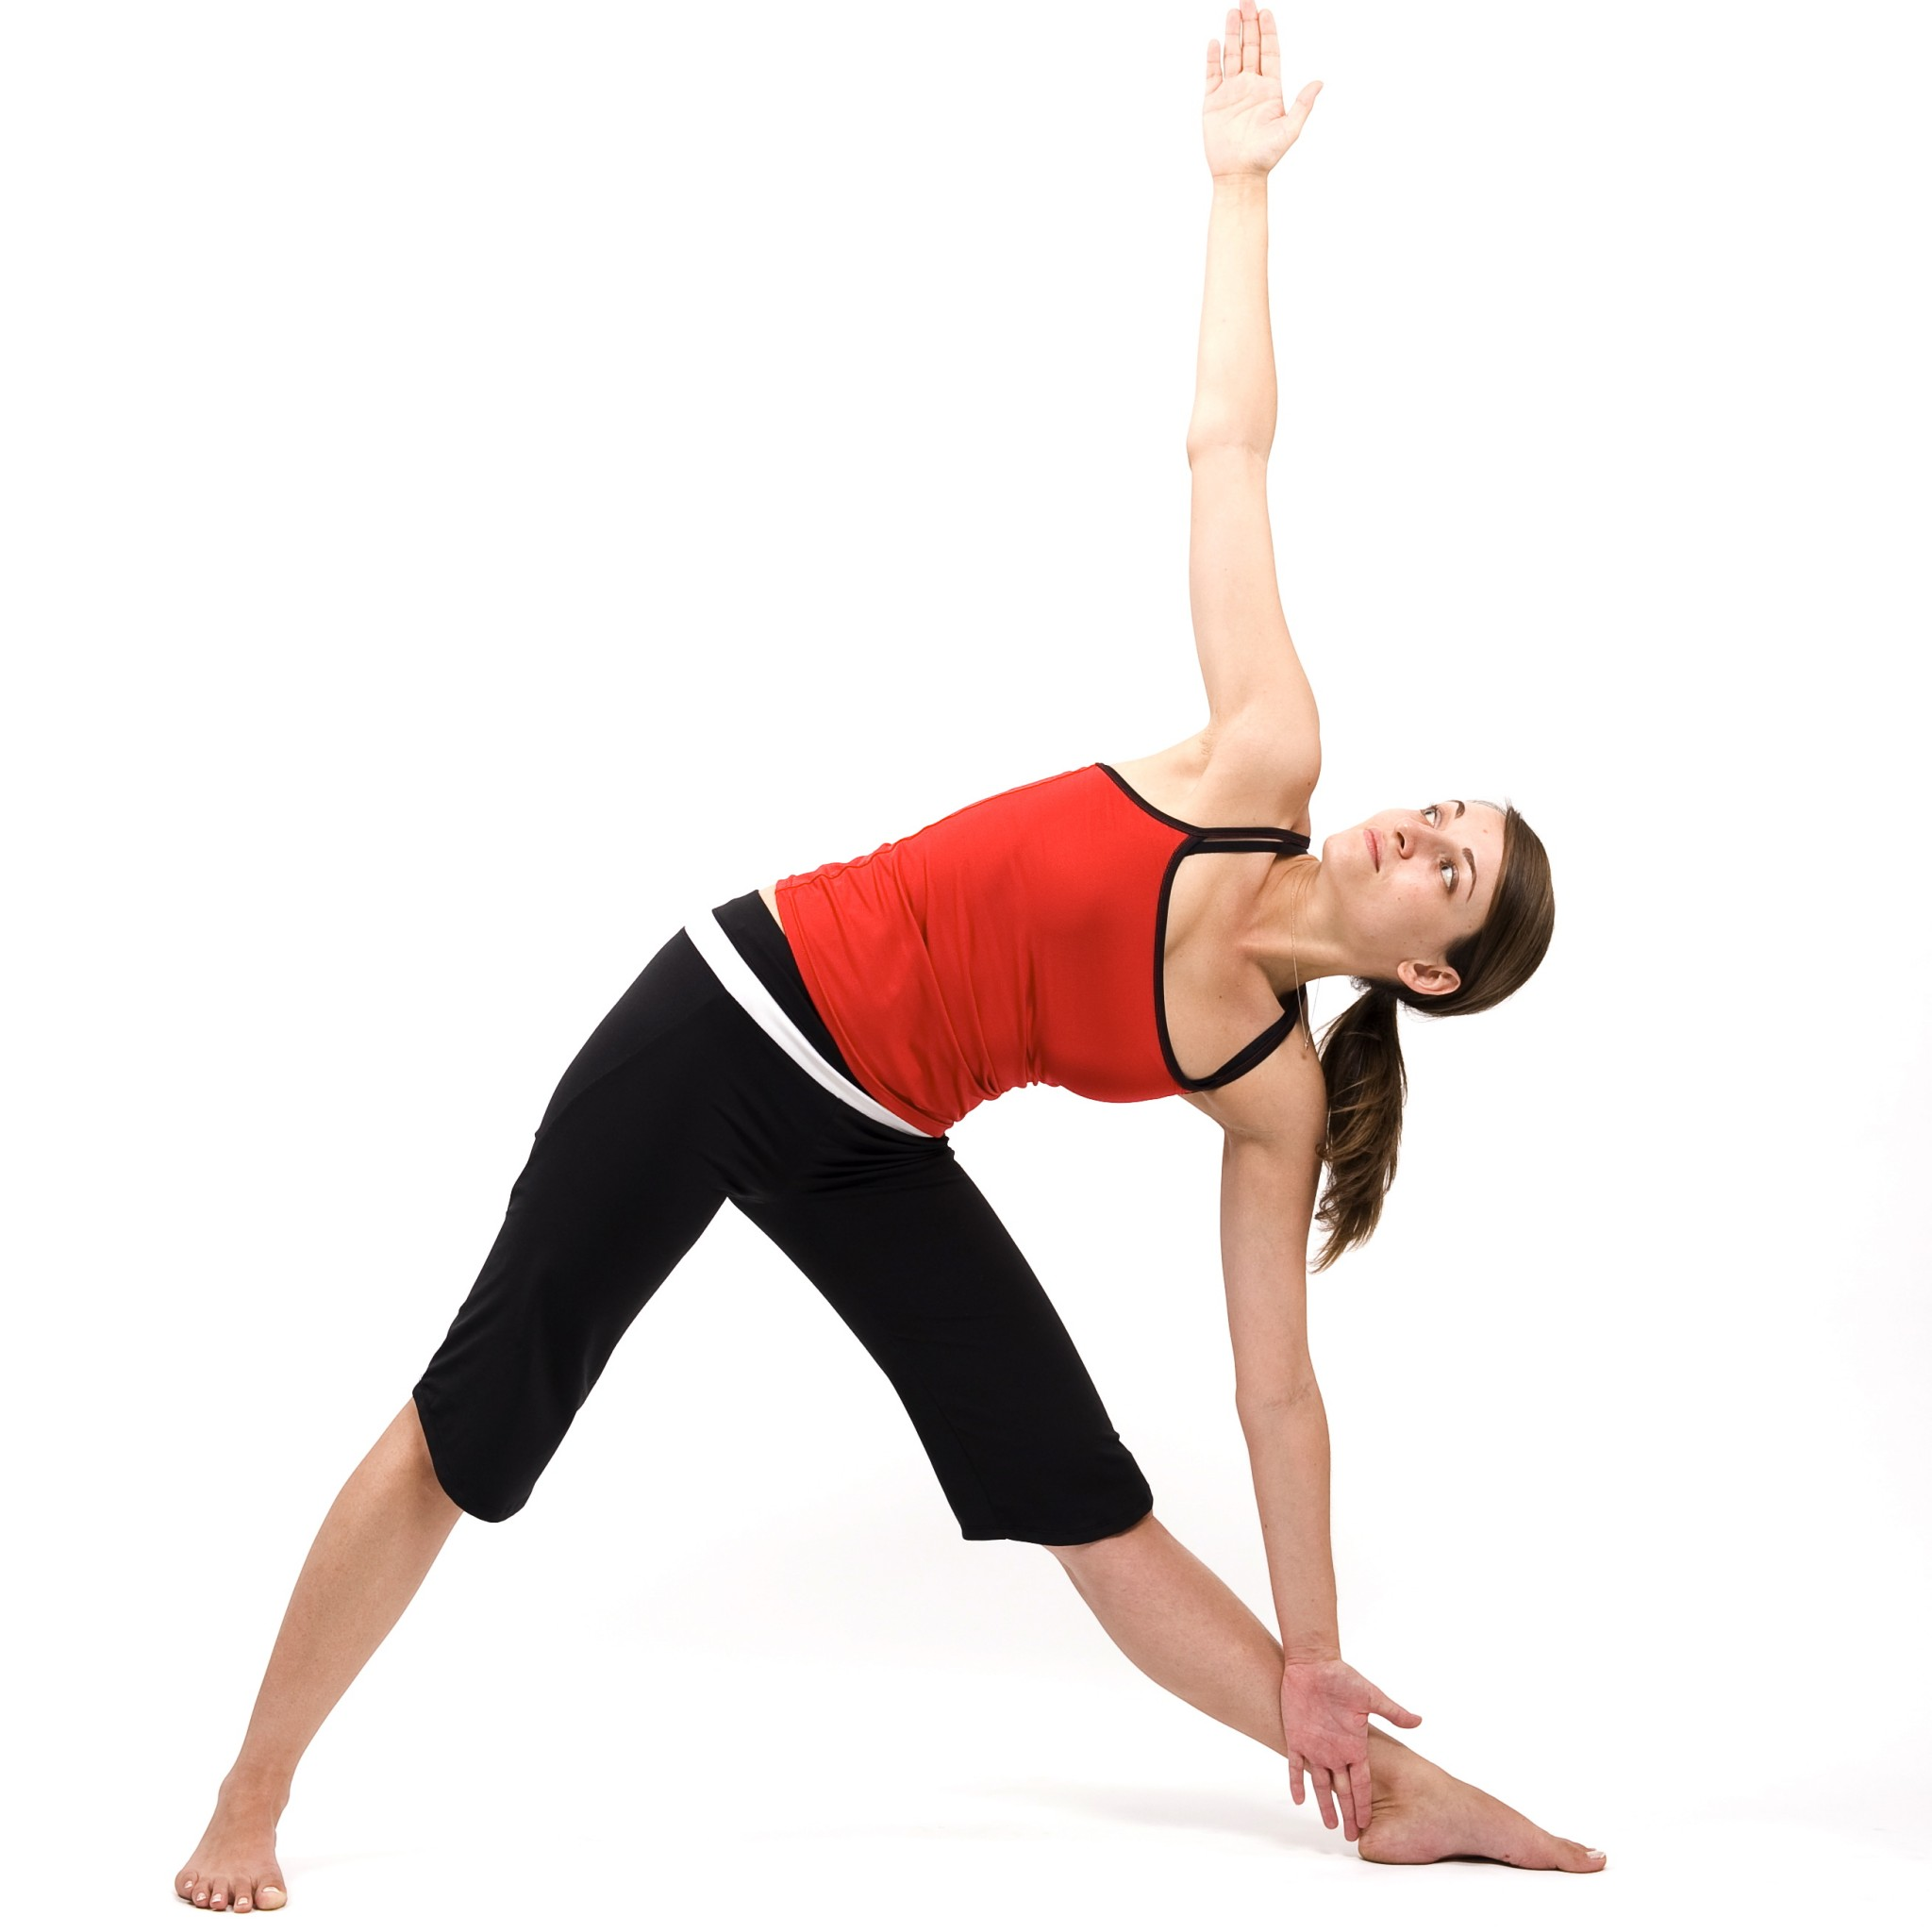 8. The Triangle Pose - The Best Yoga Poses for Pregnant Women